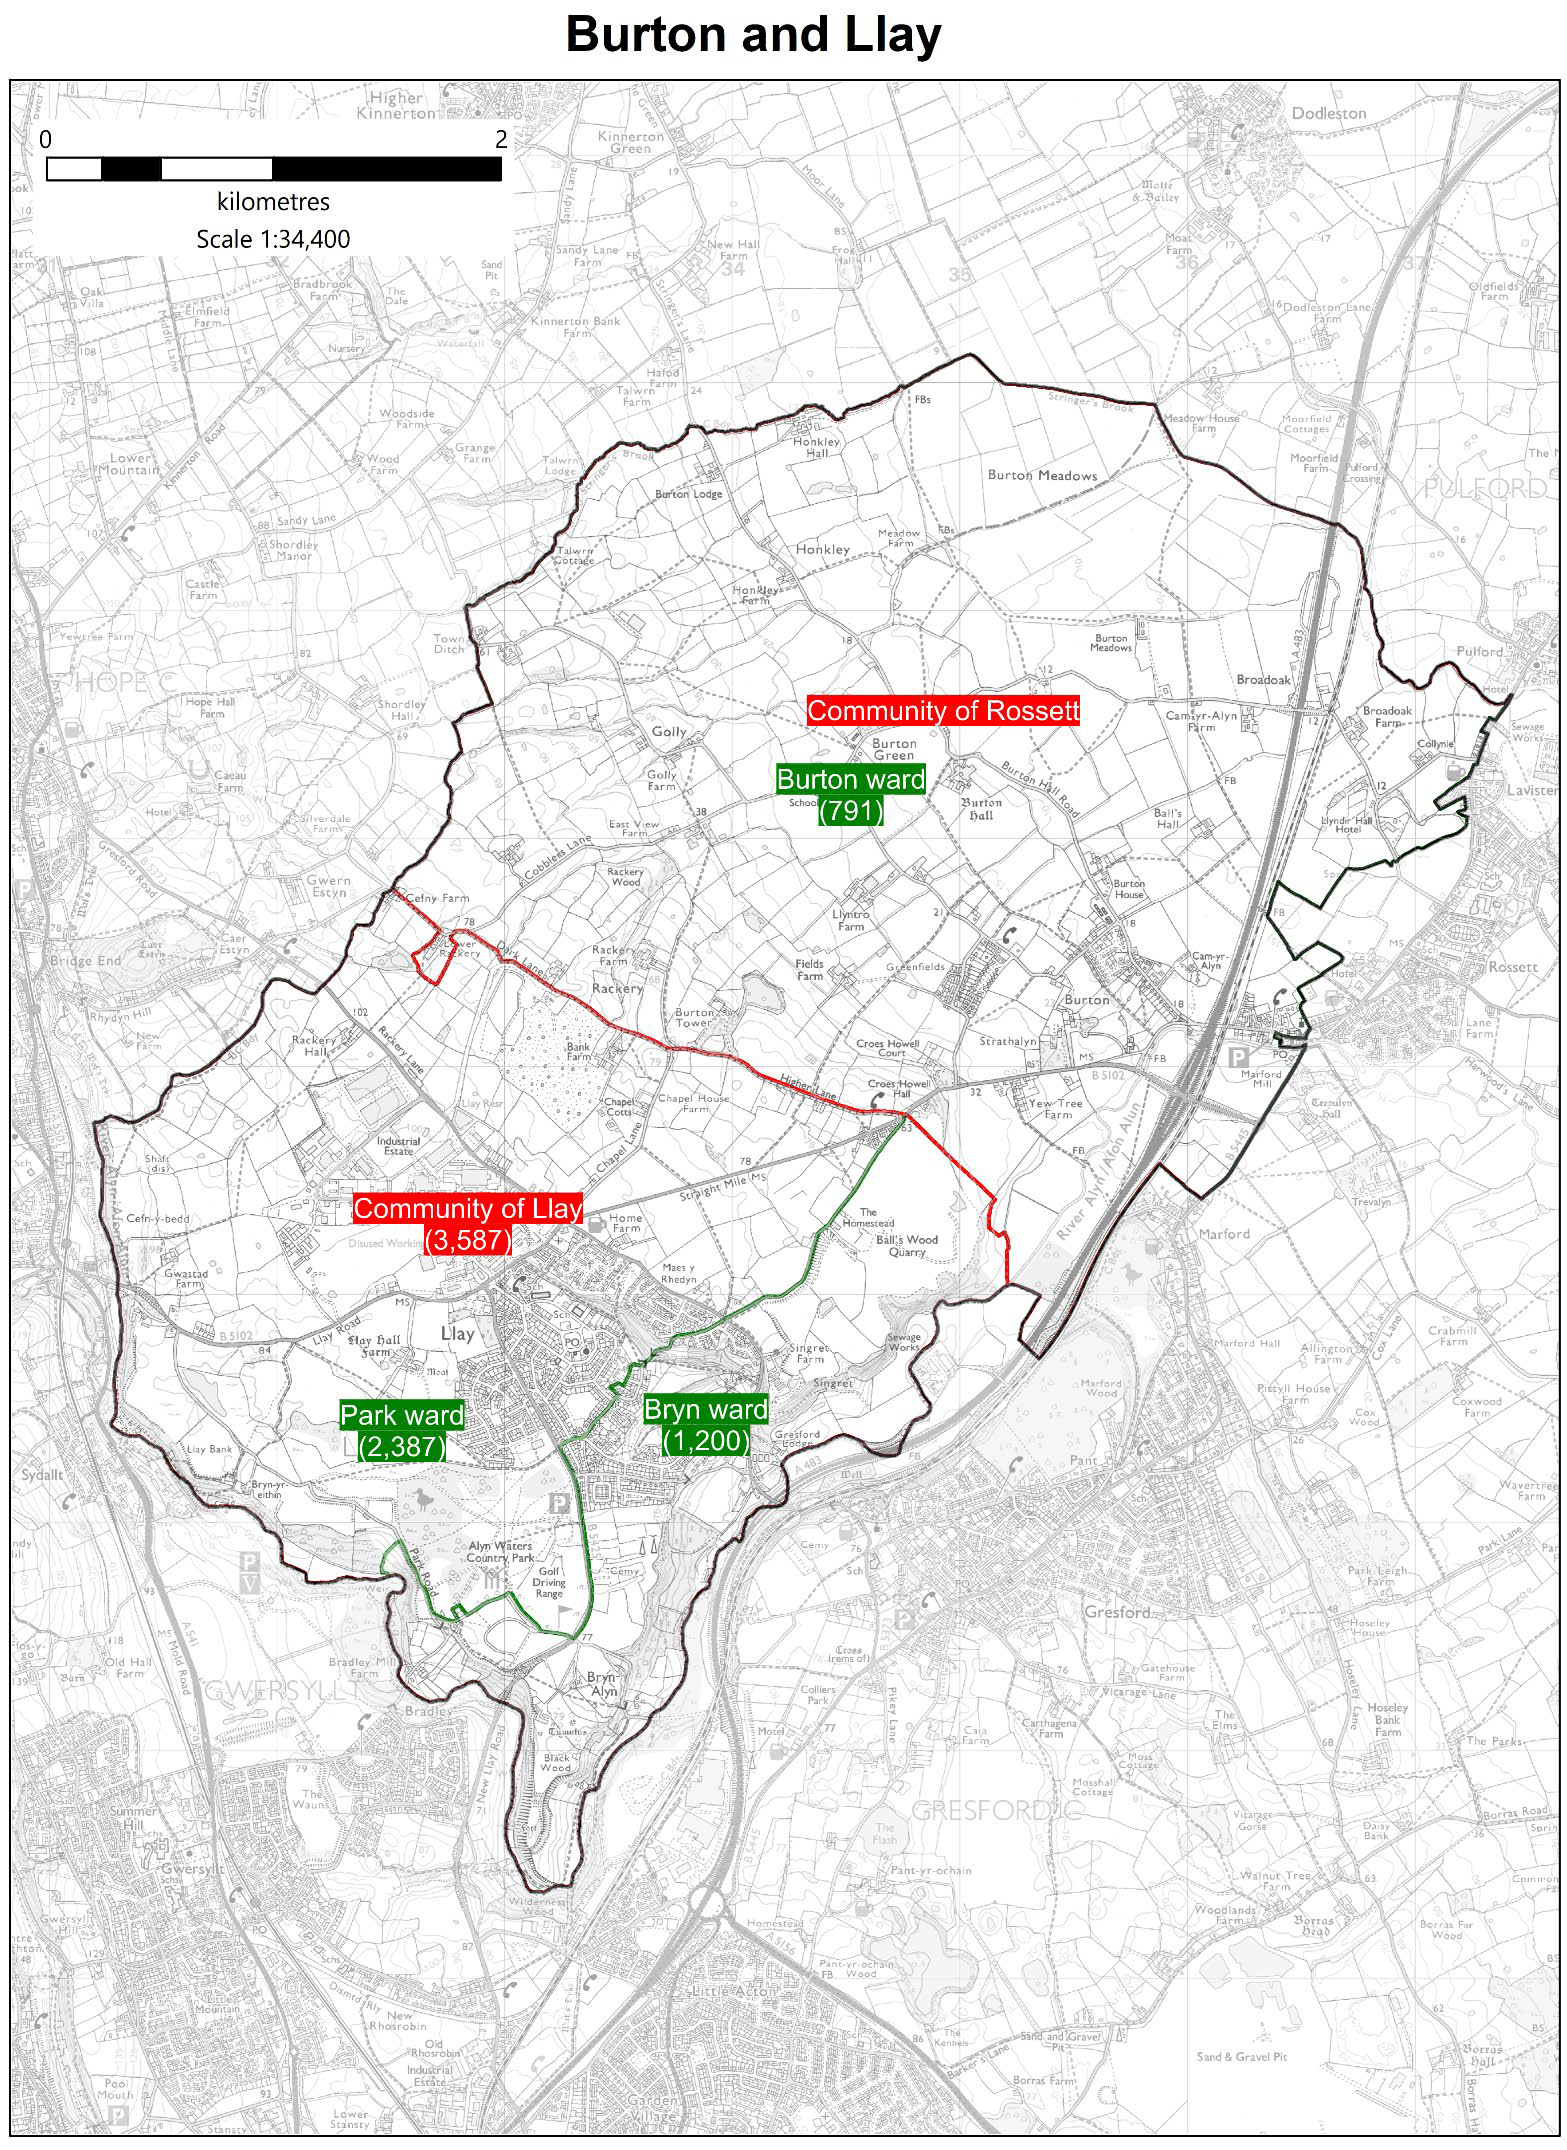 Map shows the proposed boundary of the Llay ward